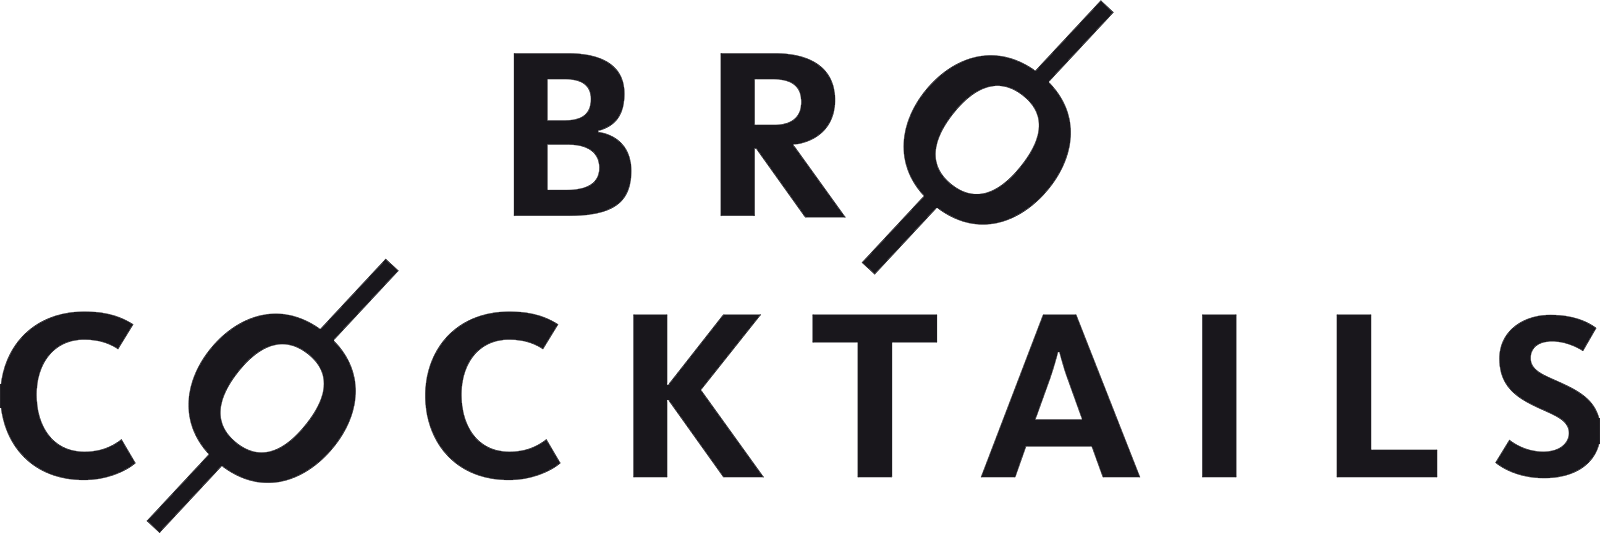 BroCocktails | Mobile Cocktailbar